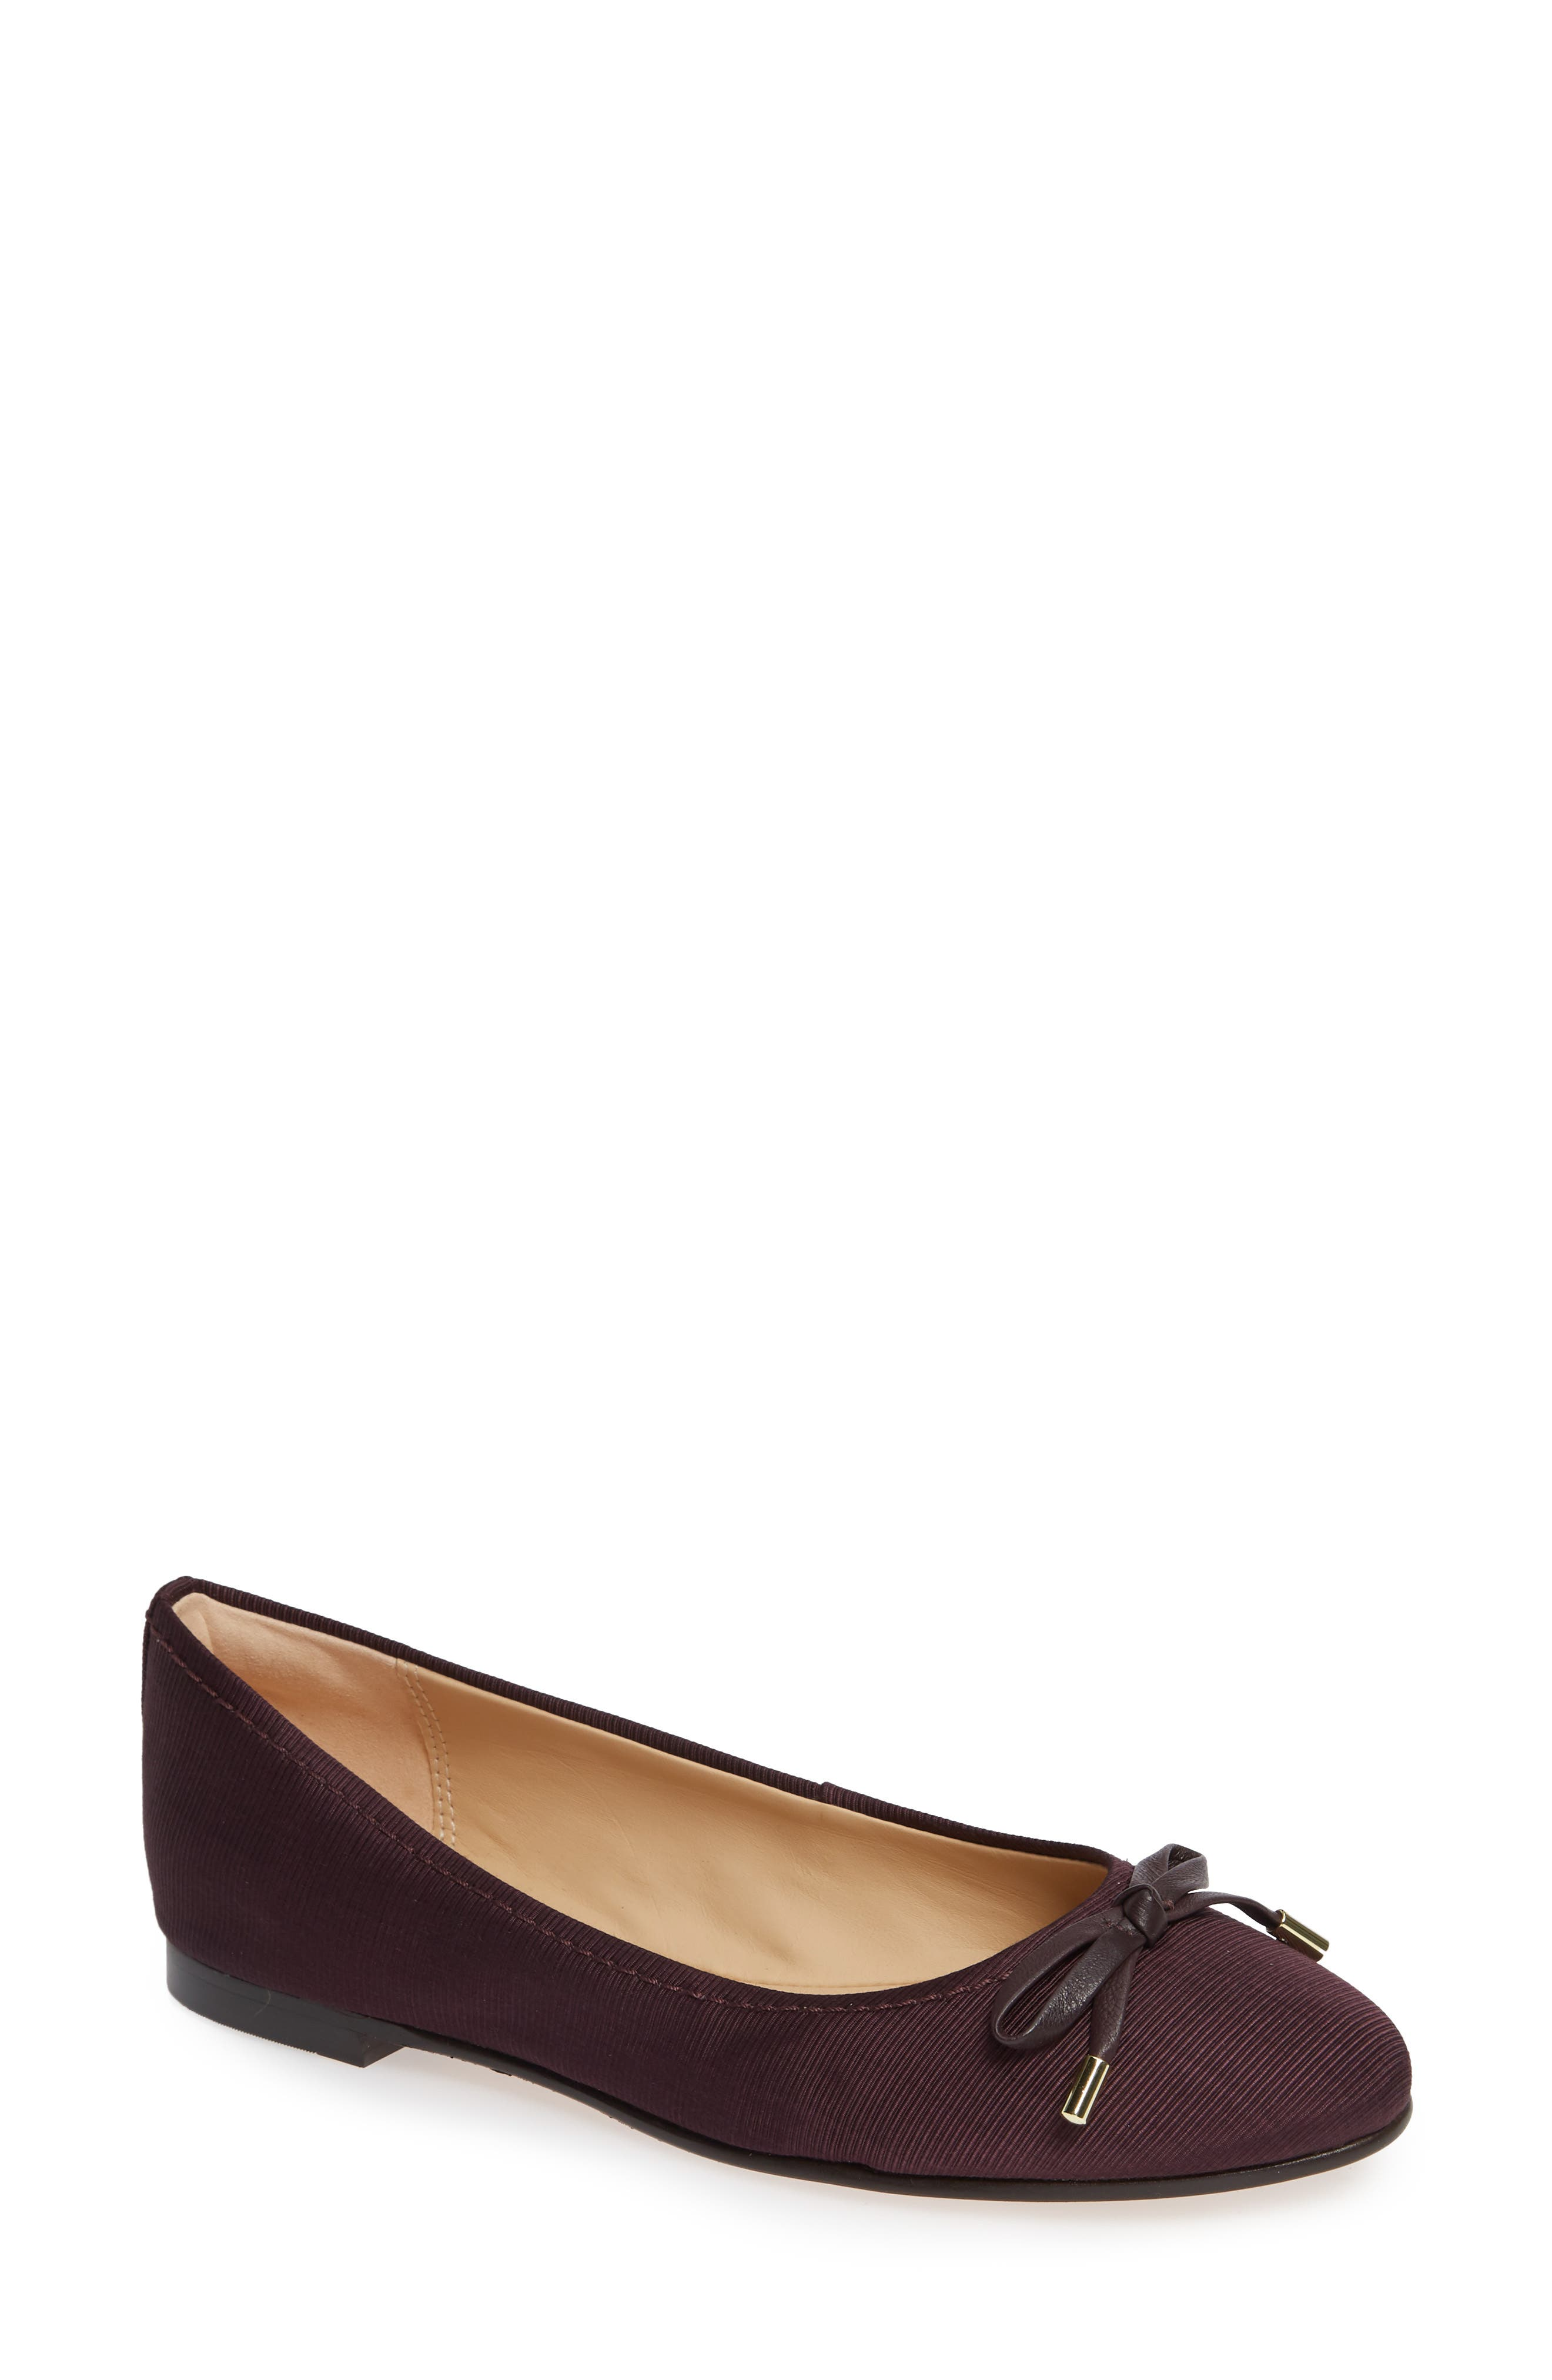 Grace Lily Flat,                         Main,                         color, 930